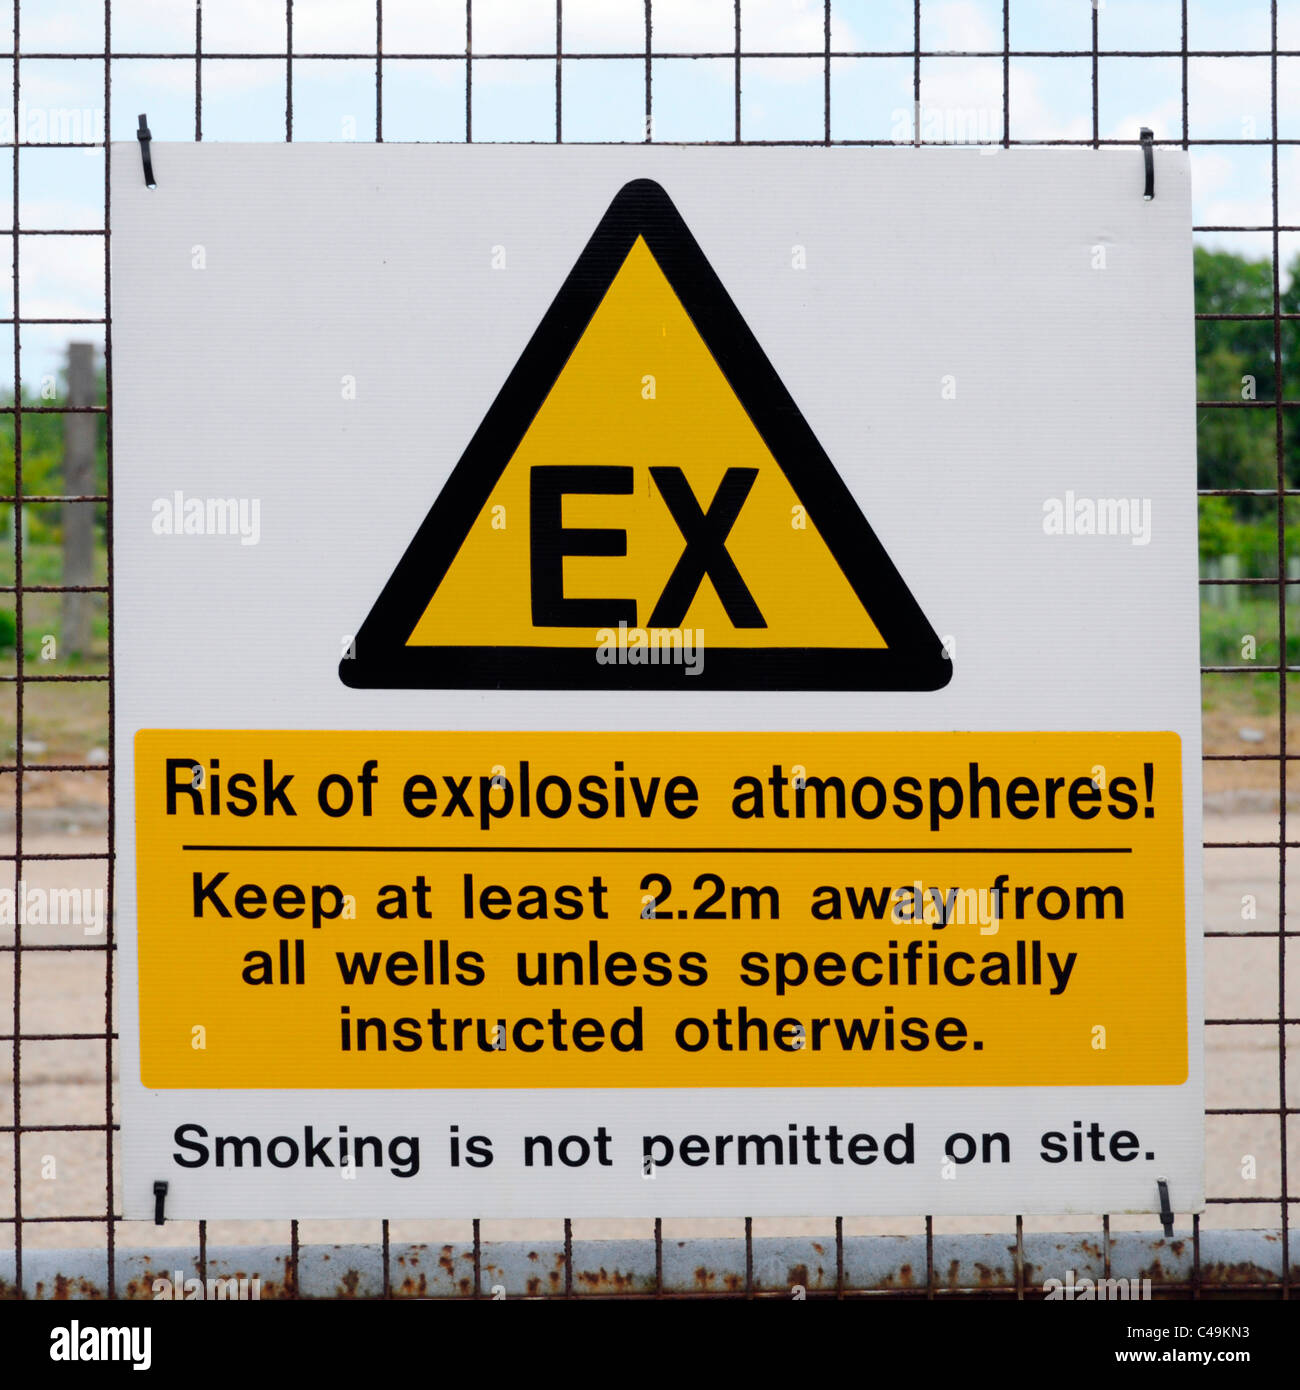 Waste management explosive atmosphere warning signs on closed landfill site after landscaping & well installations - Stock Image